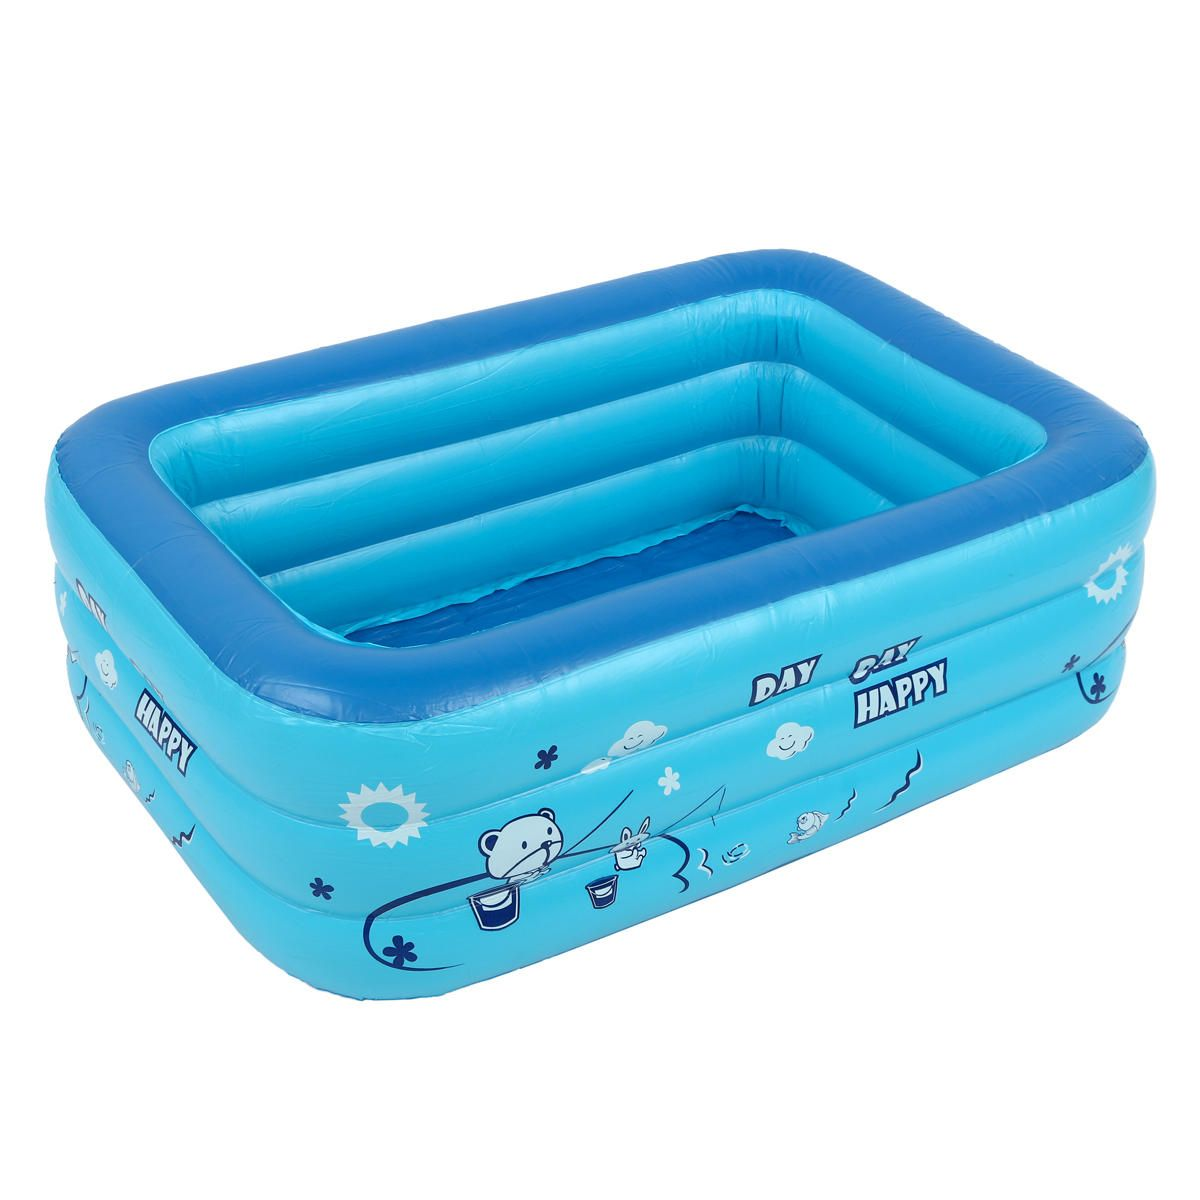 TXS US$29.89~49.89 Kids Baby Children Inflatable Swimming Pool 3 Layer Pool Summer Water Fun Play Toy